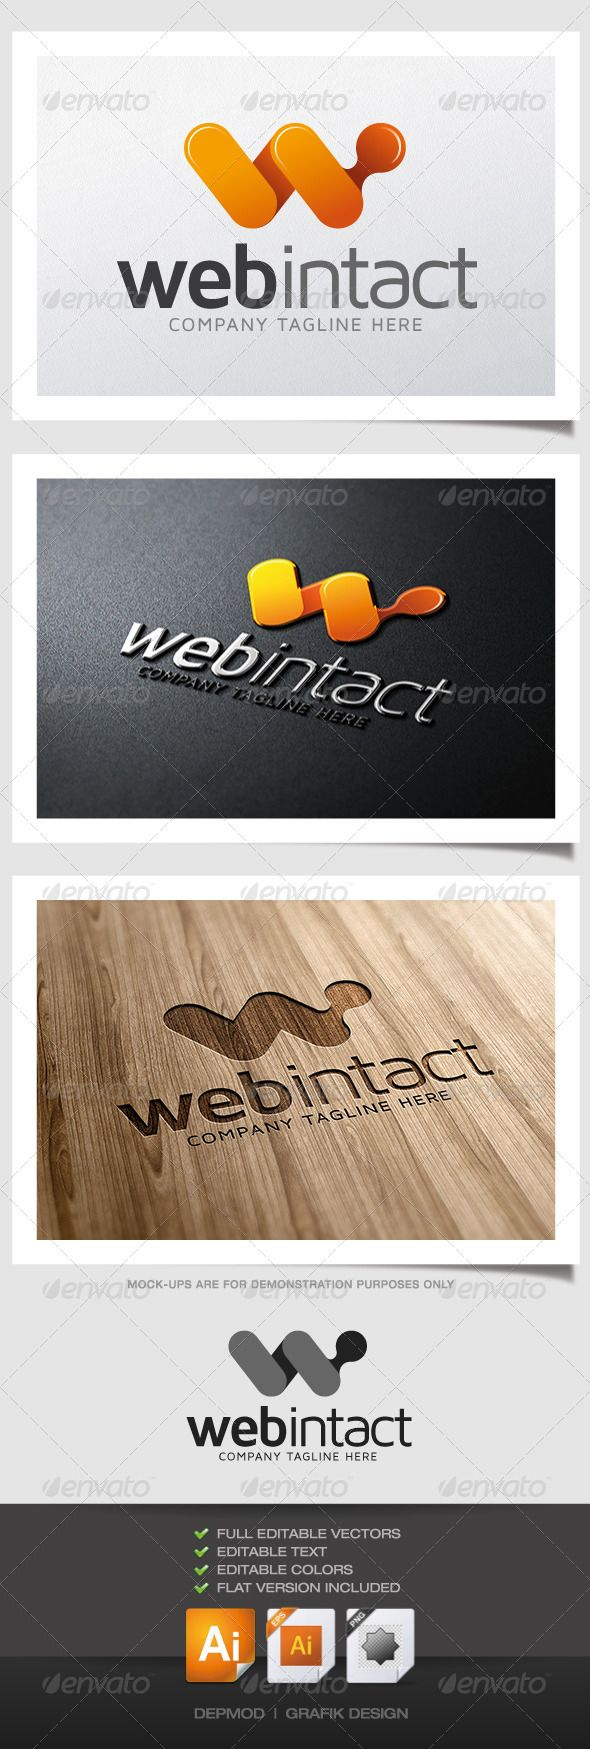 Web Intact Logo Letters Logo Templates